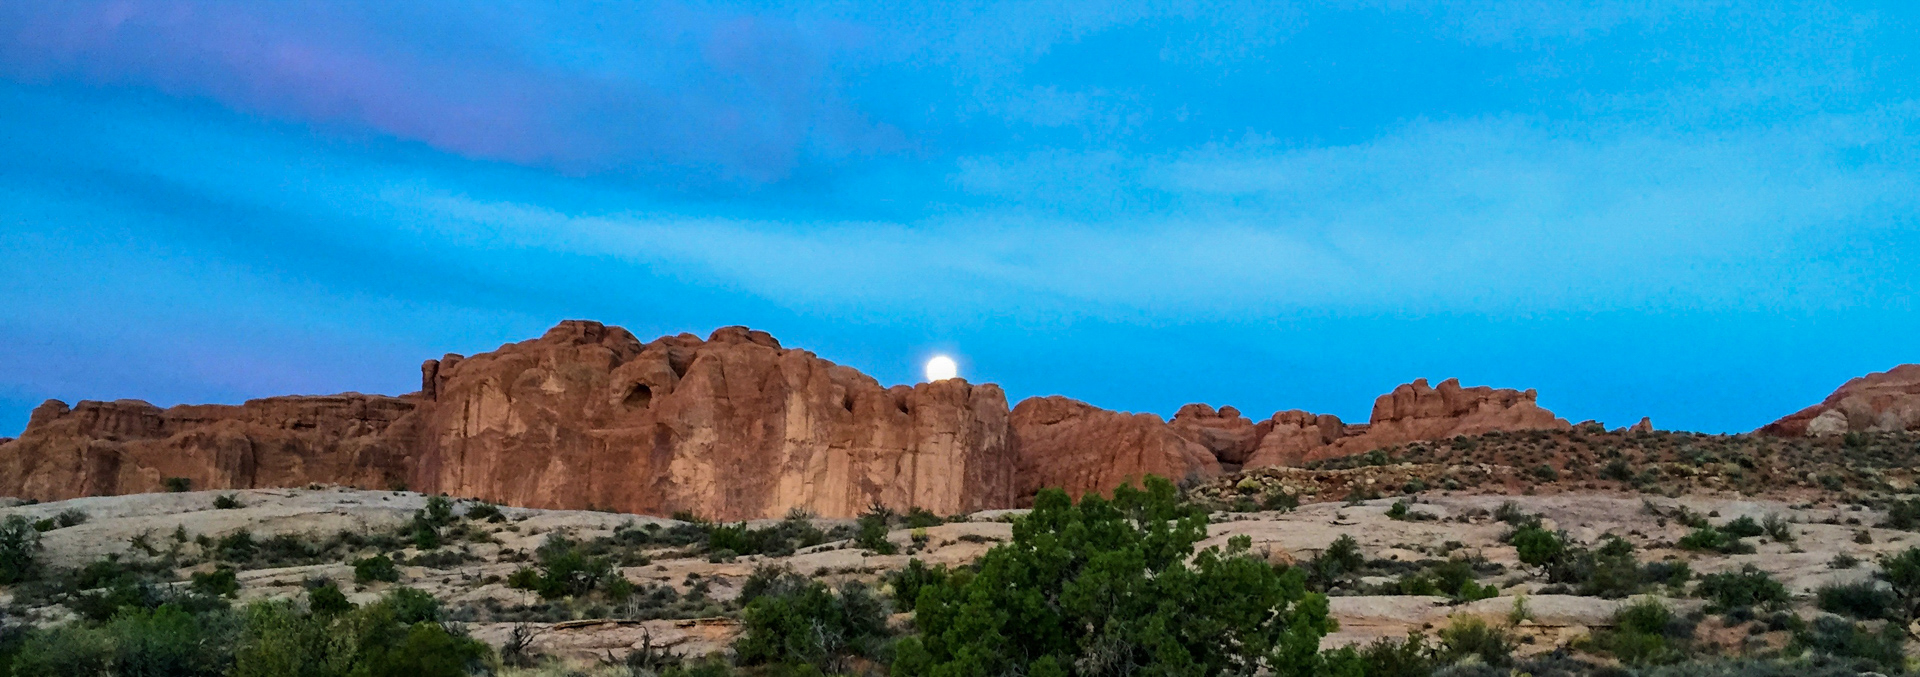 J - Moonset at Arches